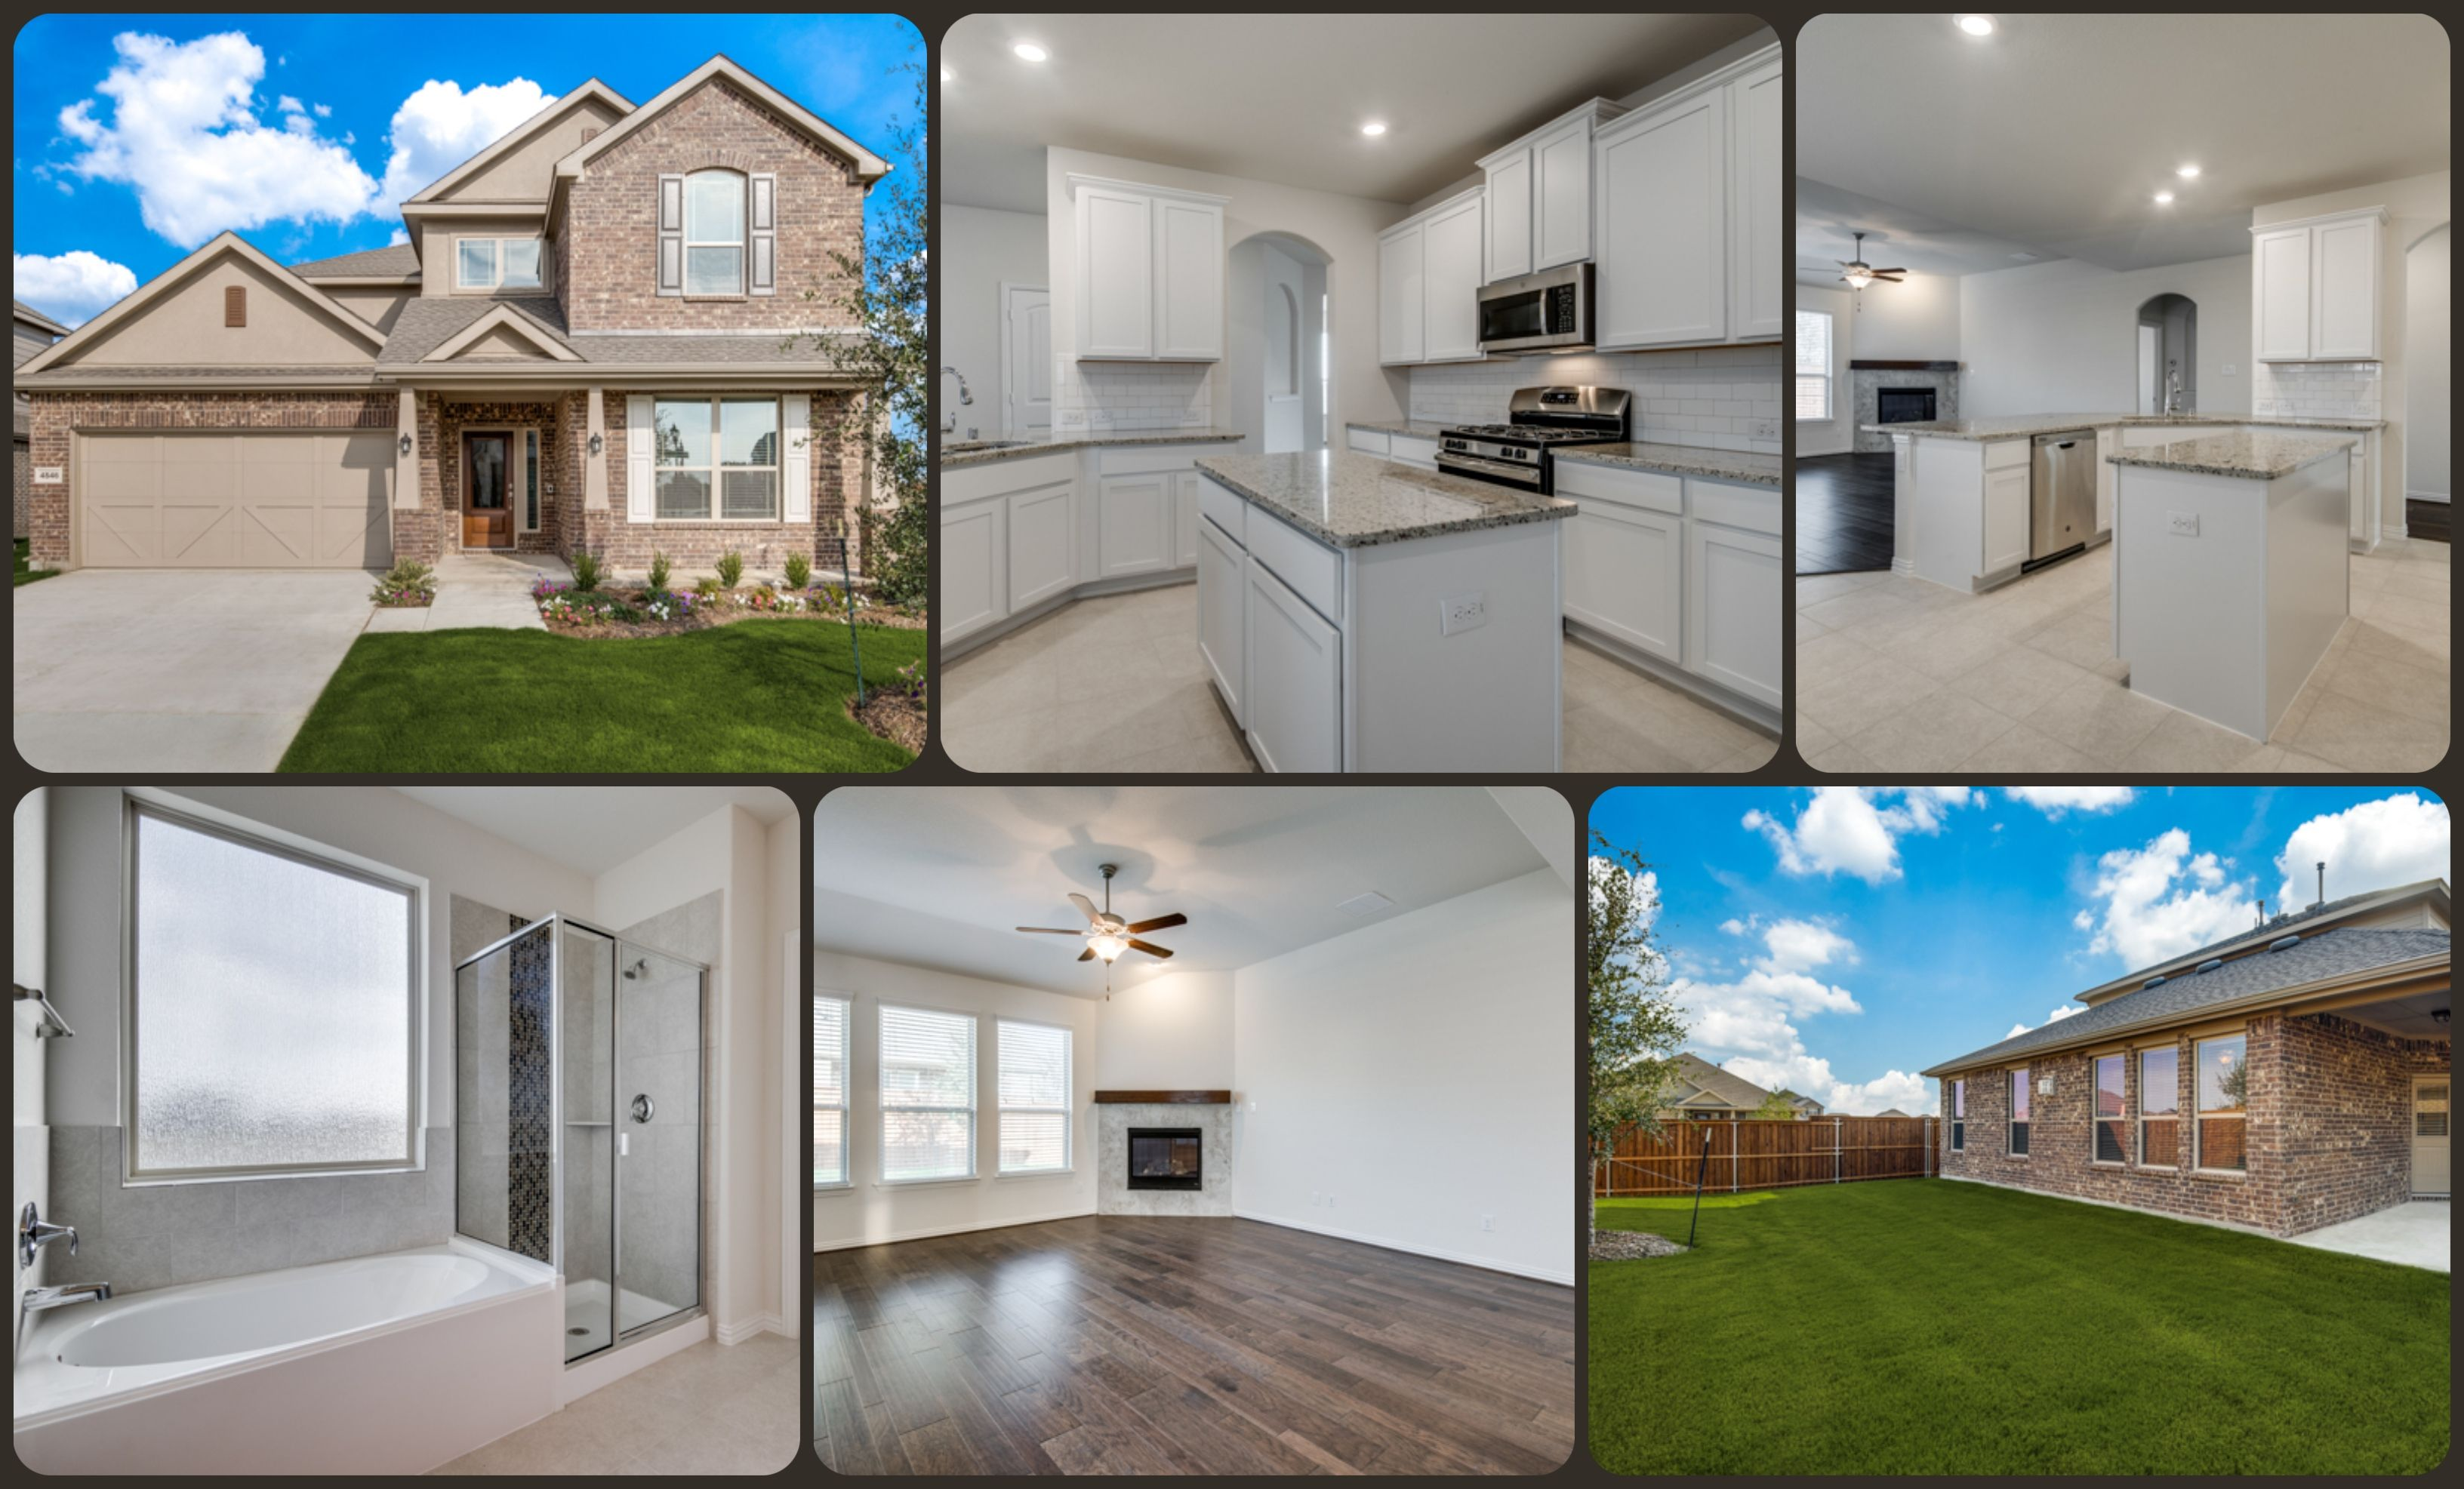 4546 frost ave in celina at sutton fields a lennar